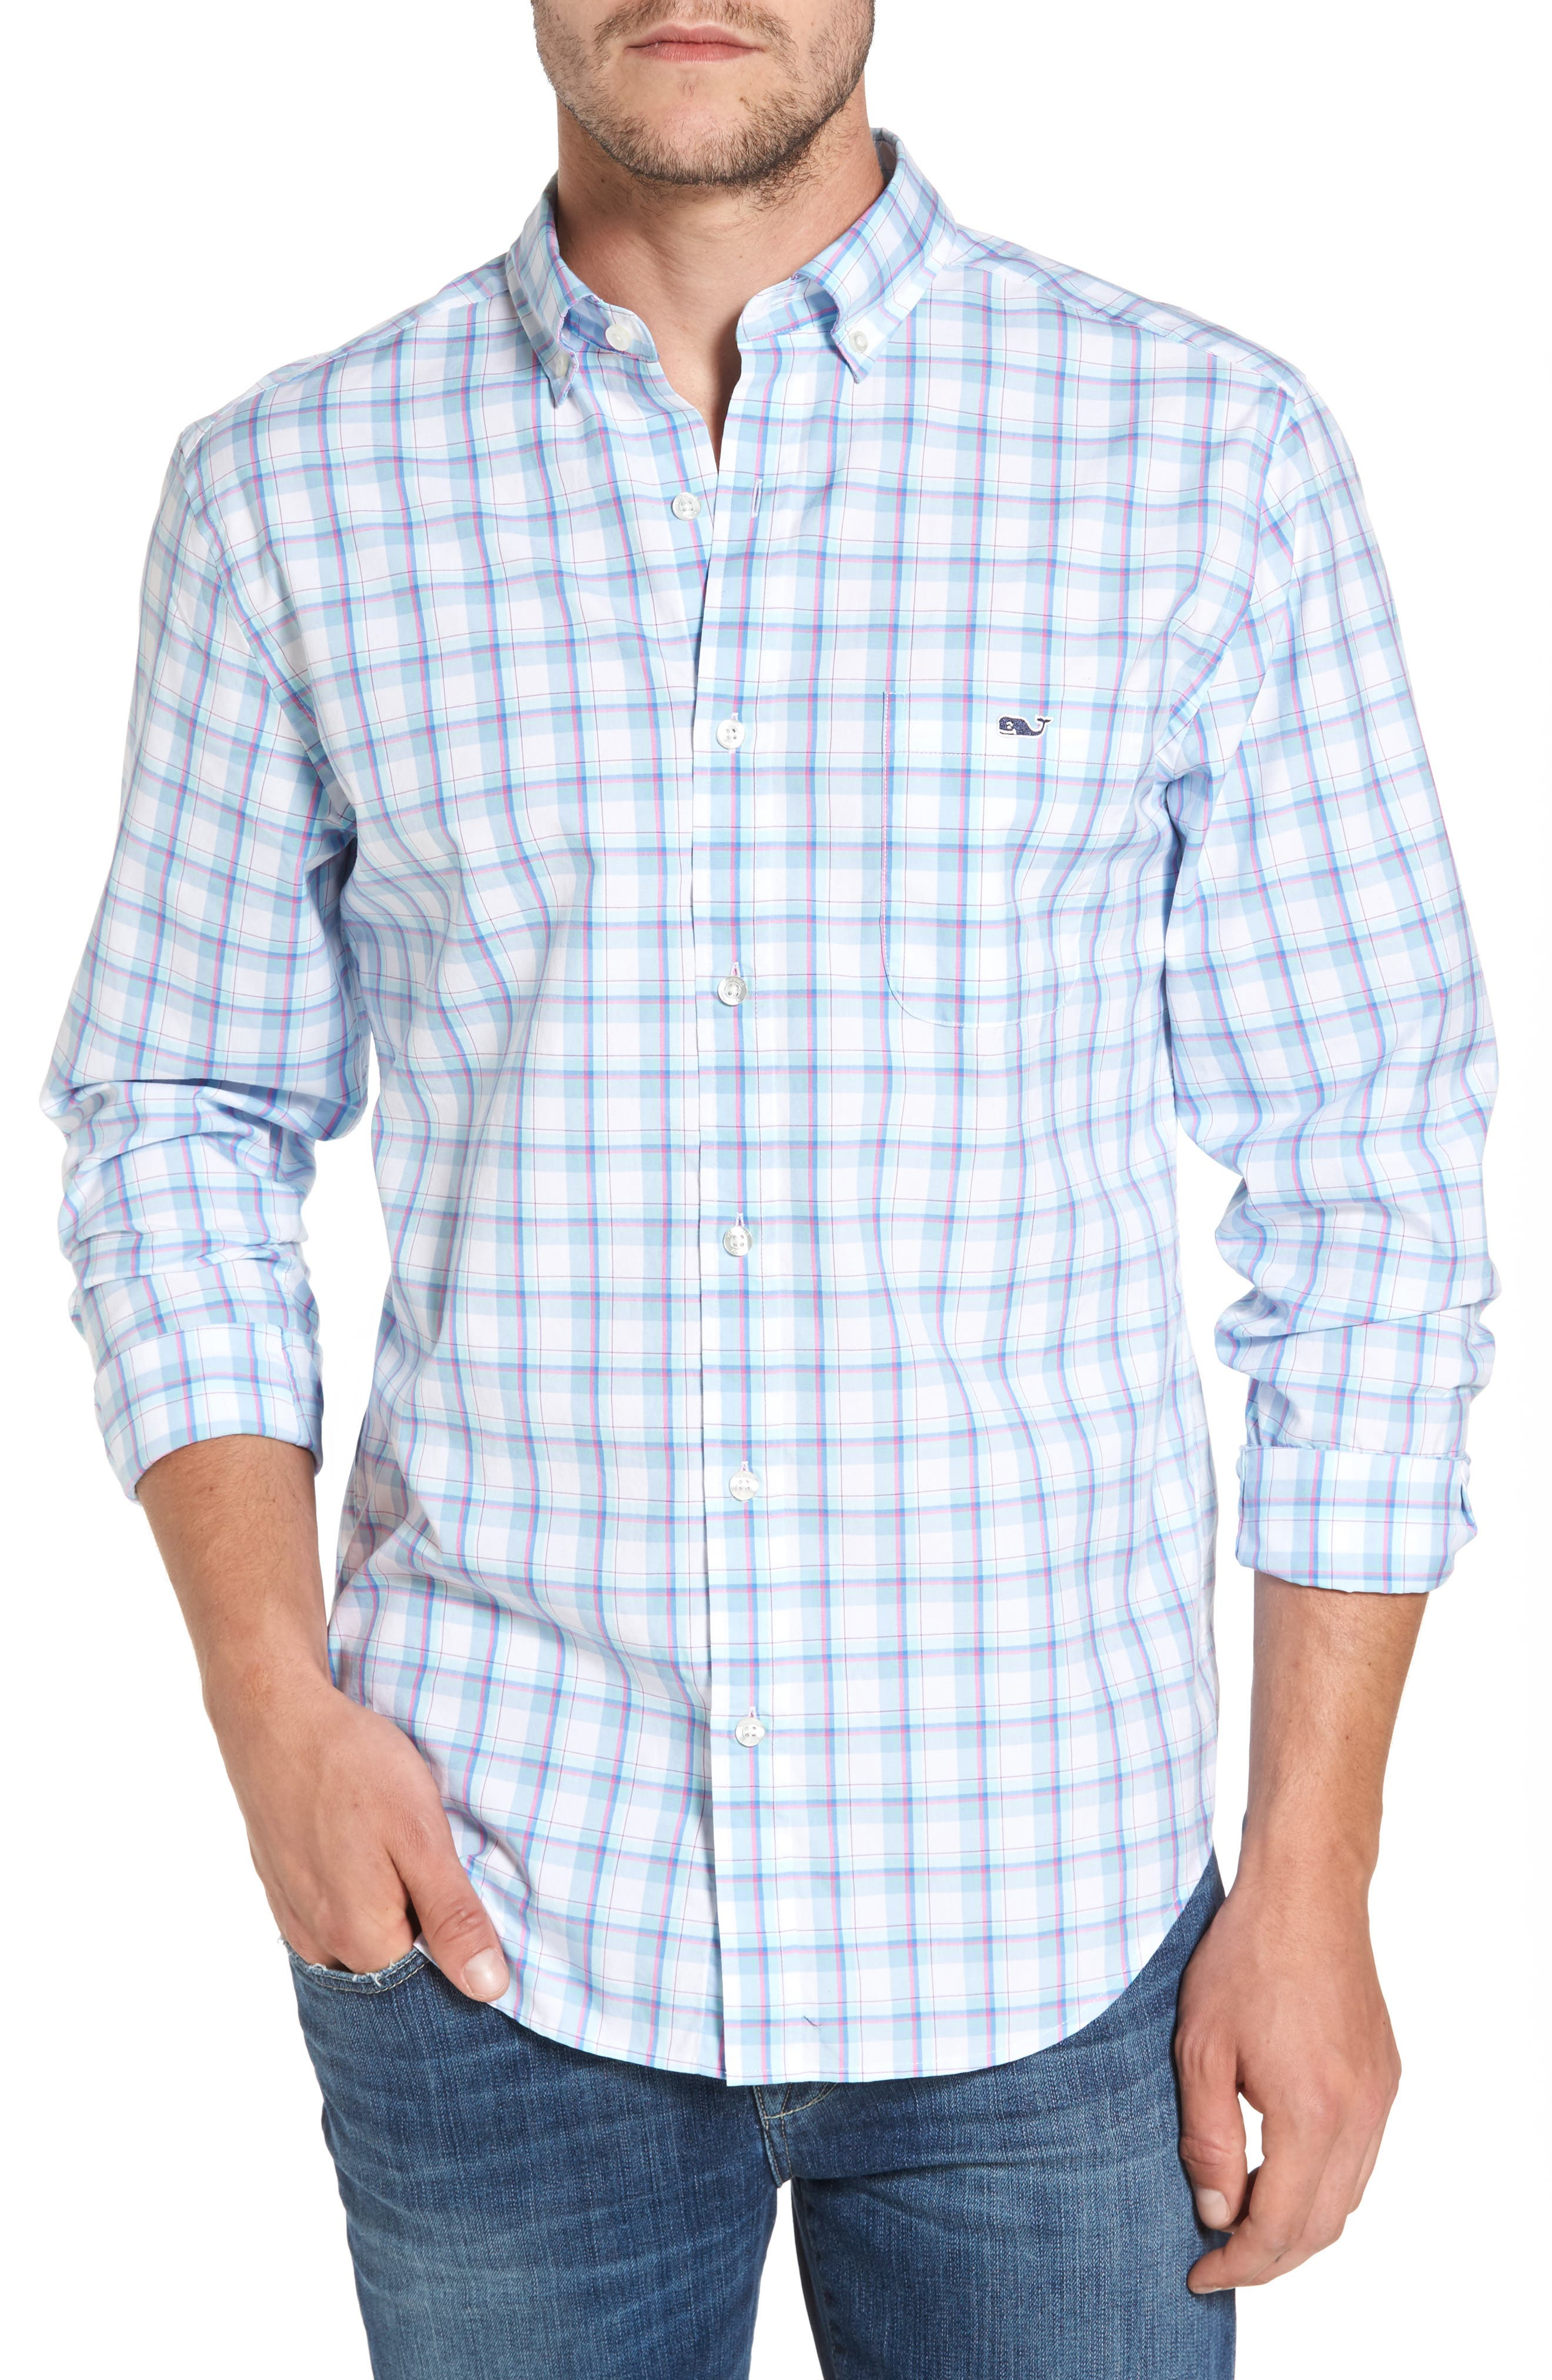 Alternate Image 1 Selected - Vineyard Vines Plaid Classic Fit Sport Shirt